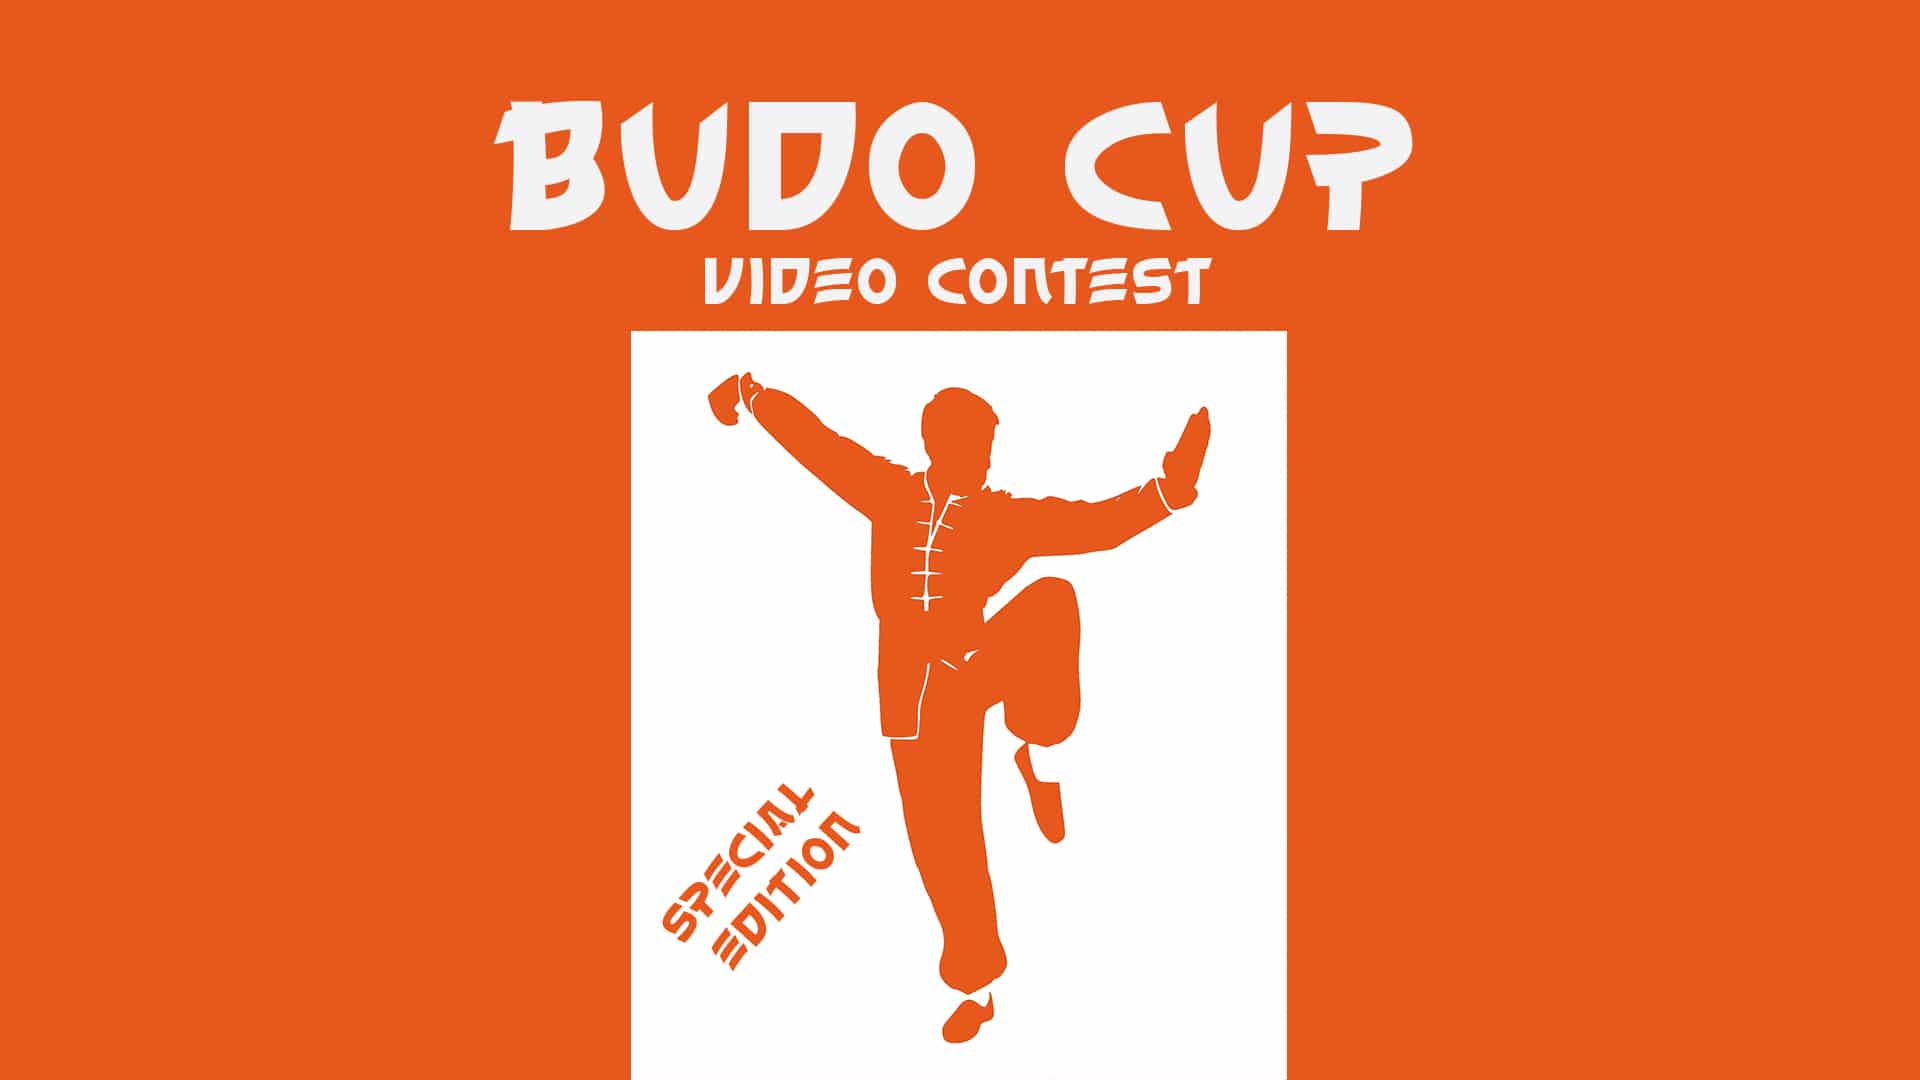 Budo Cup Video Contest